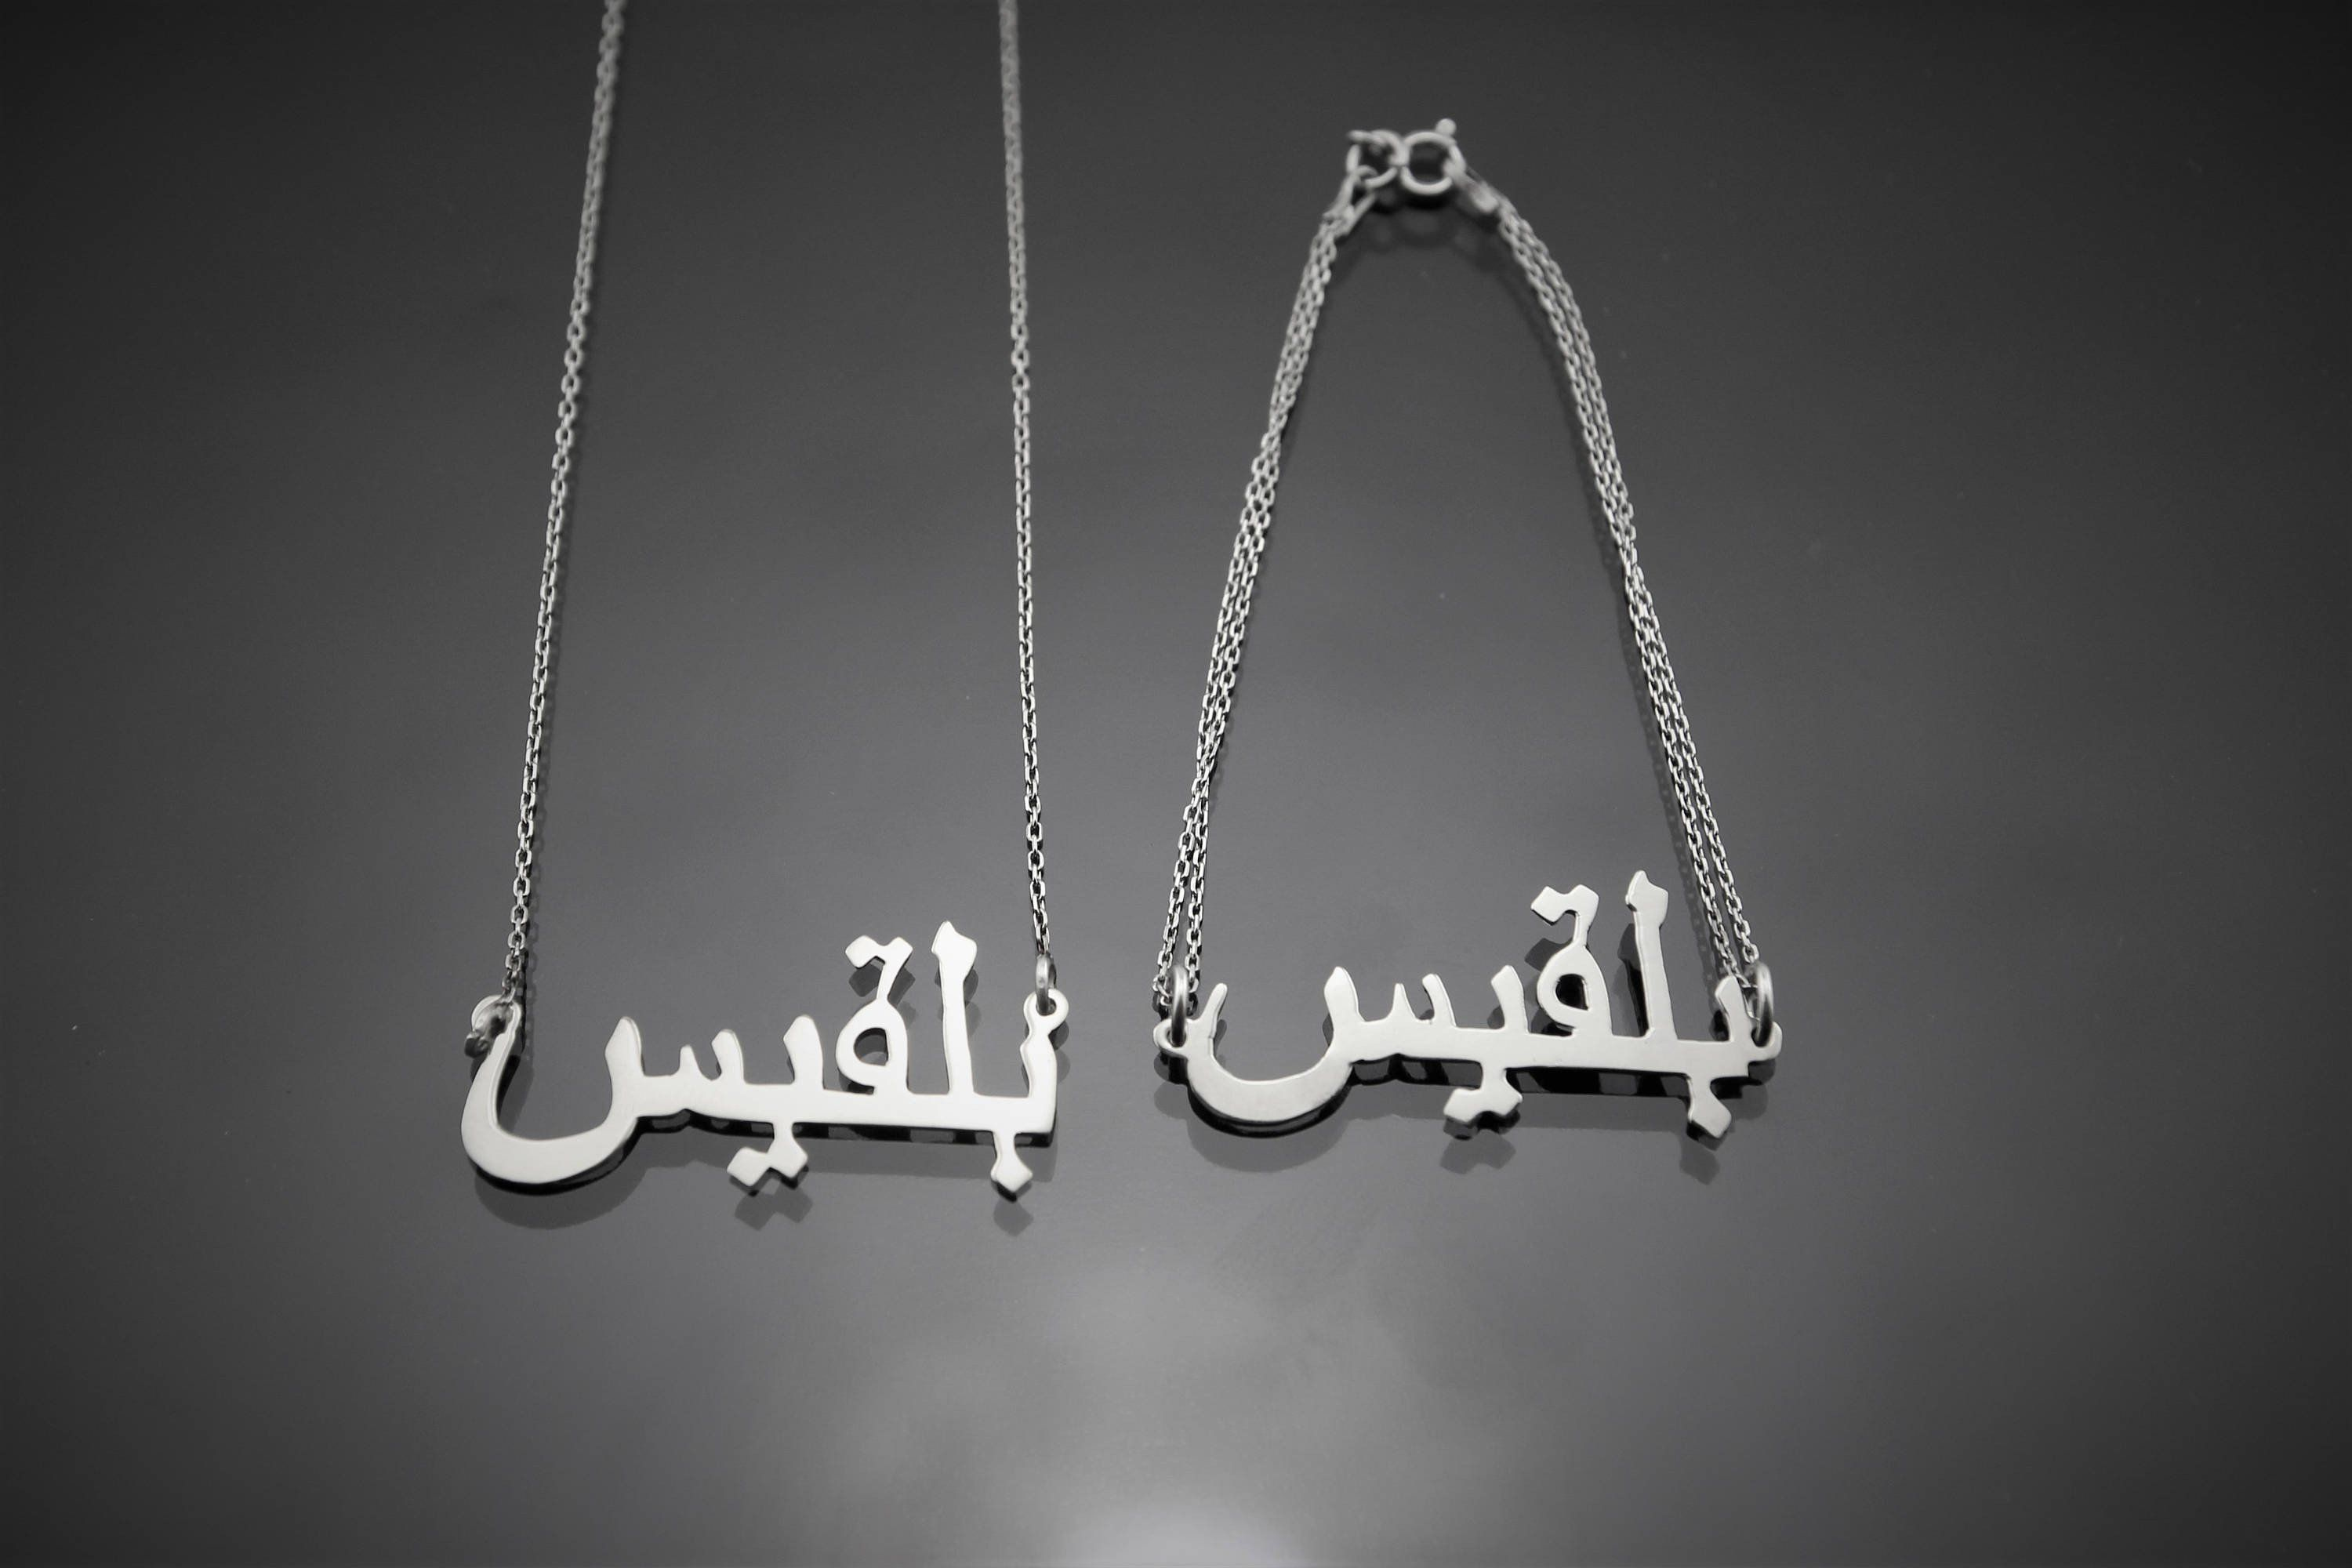 plated me necklace he gold loves ayat necklaces arabic online